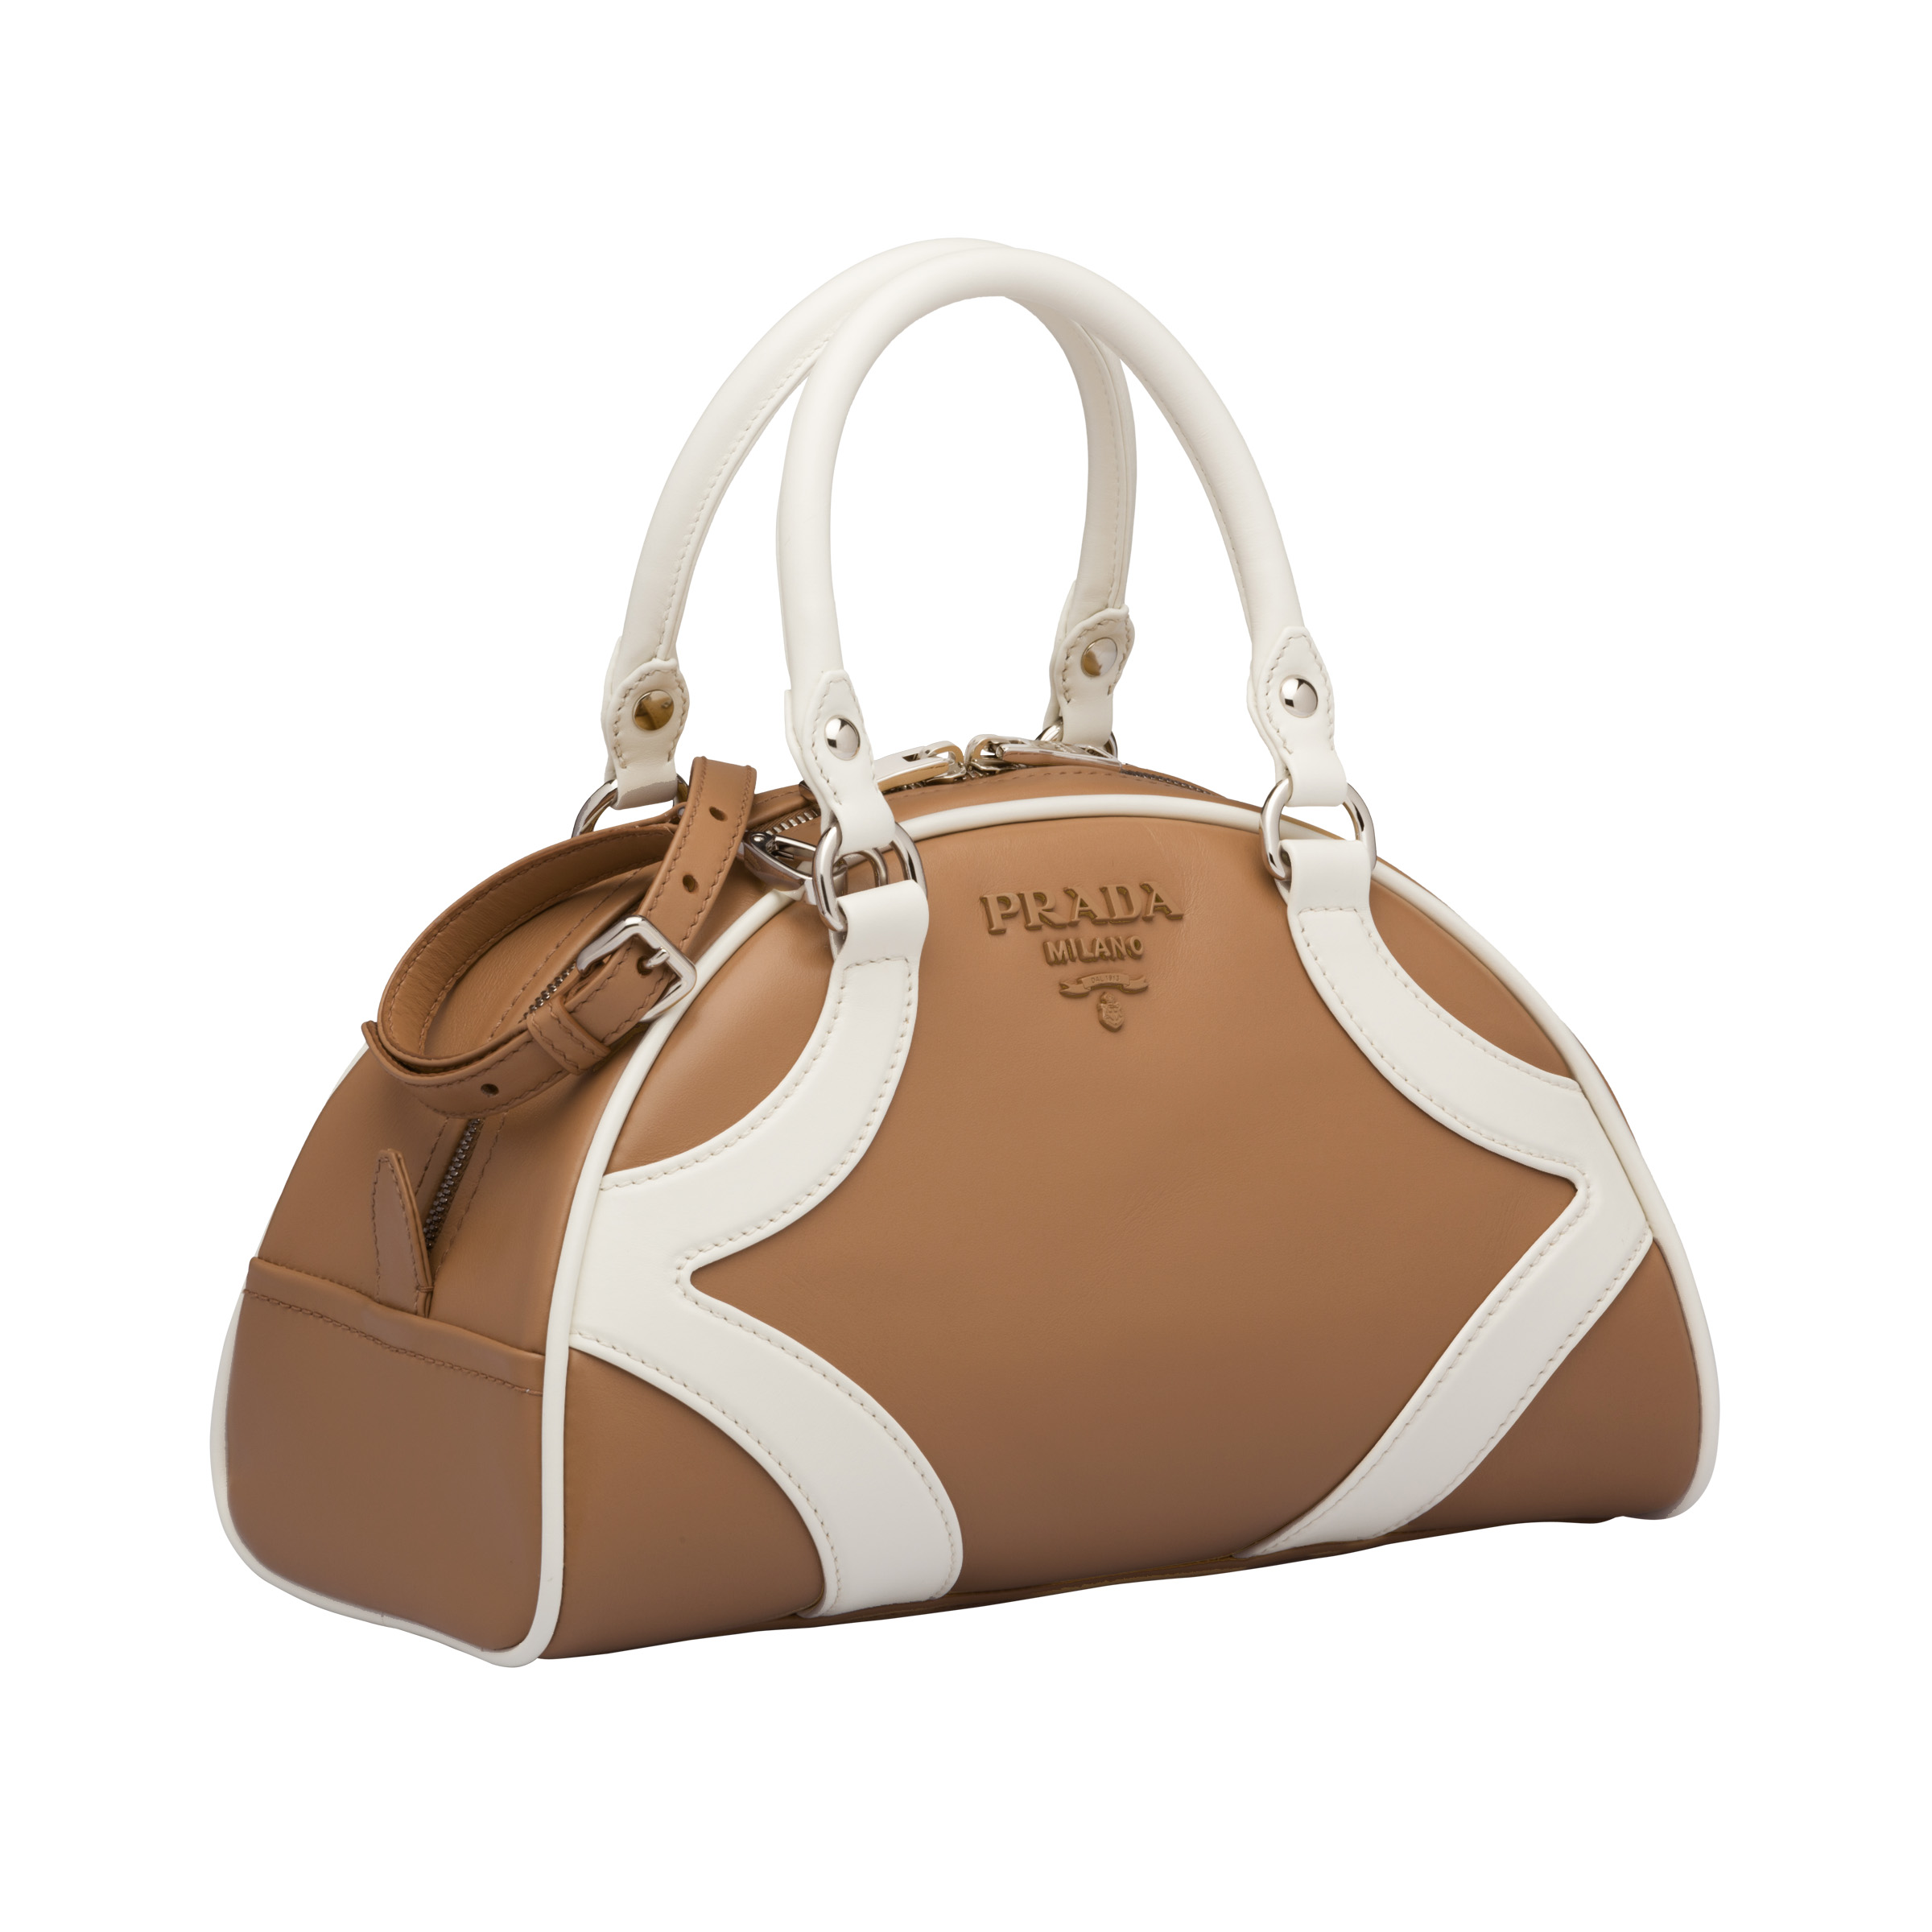 Prada bowling bag resort 2020 collection in tan